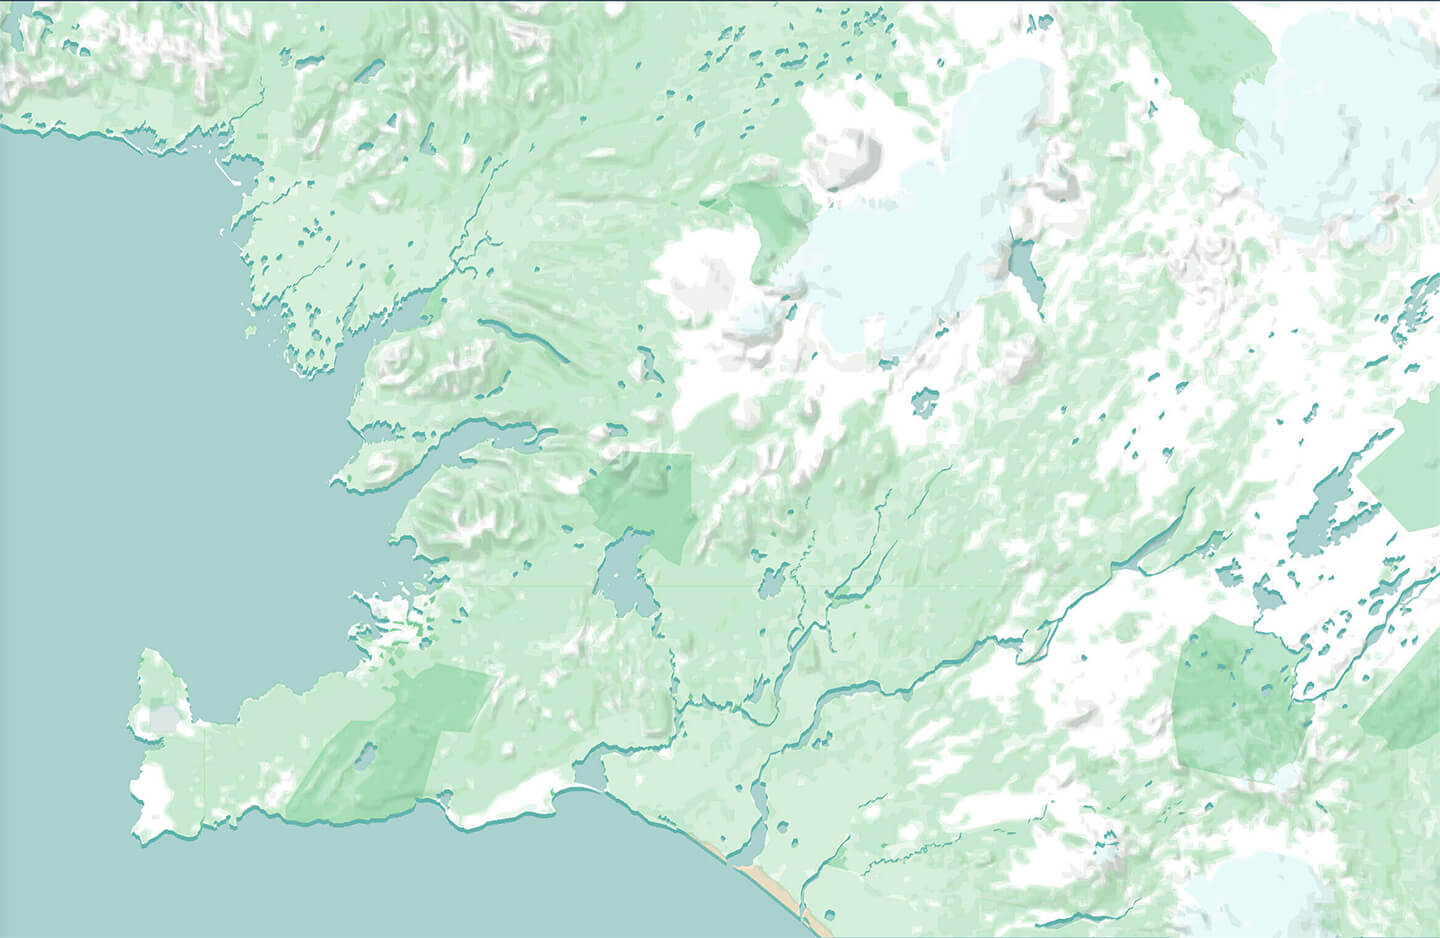 WIP Map of Iceland designed by Nimit Shah